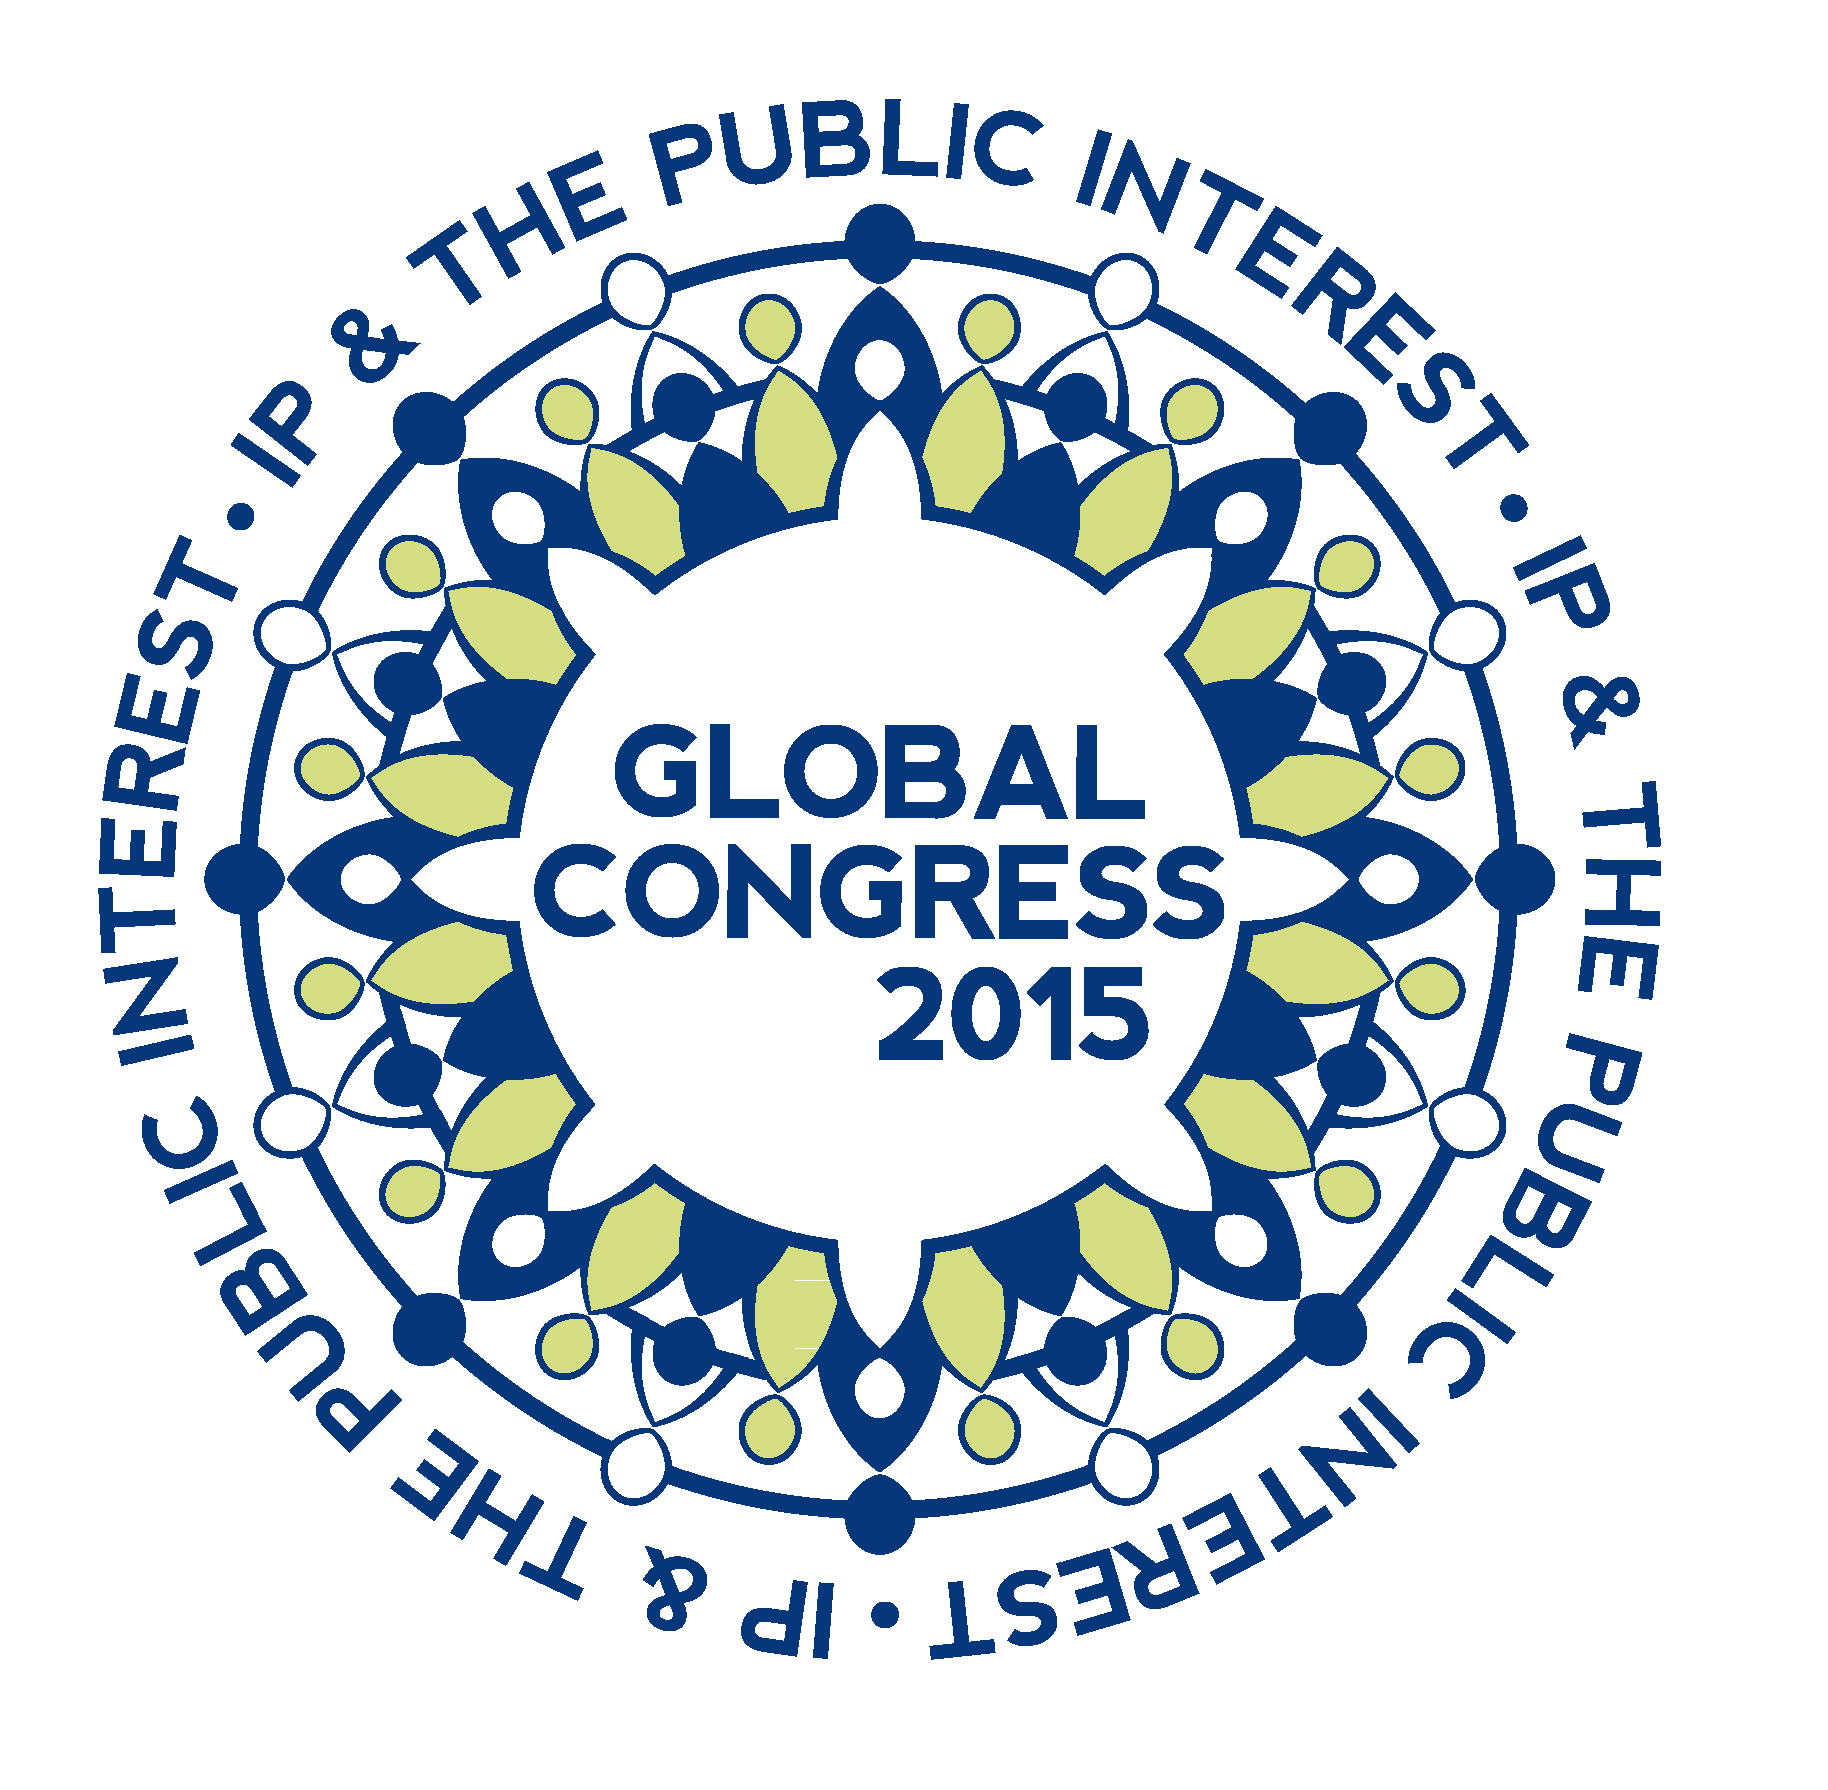 Call for Applications/Volunteers: NLU Delhi's Global Congress